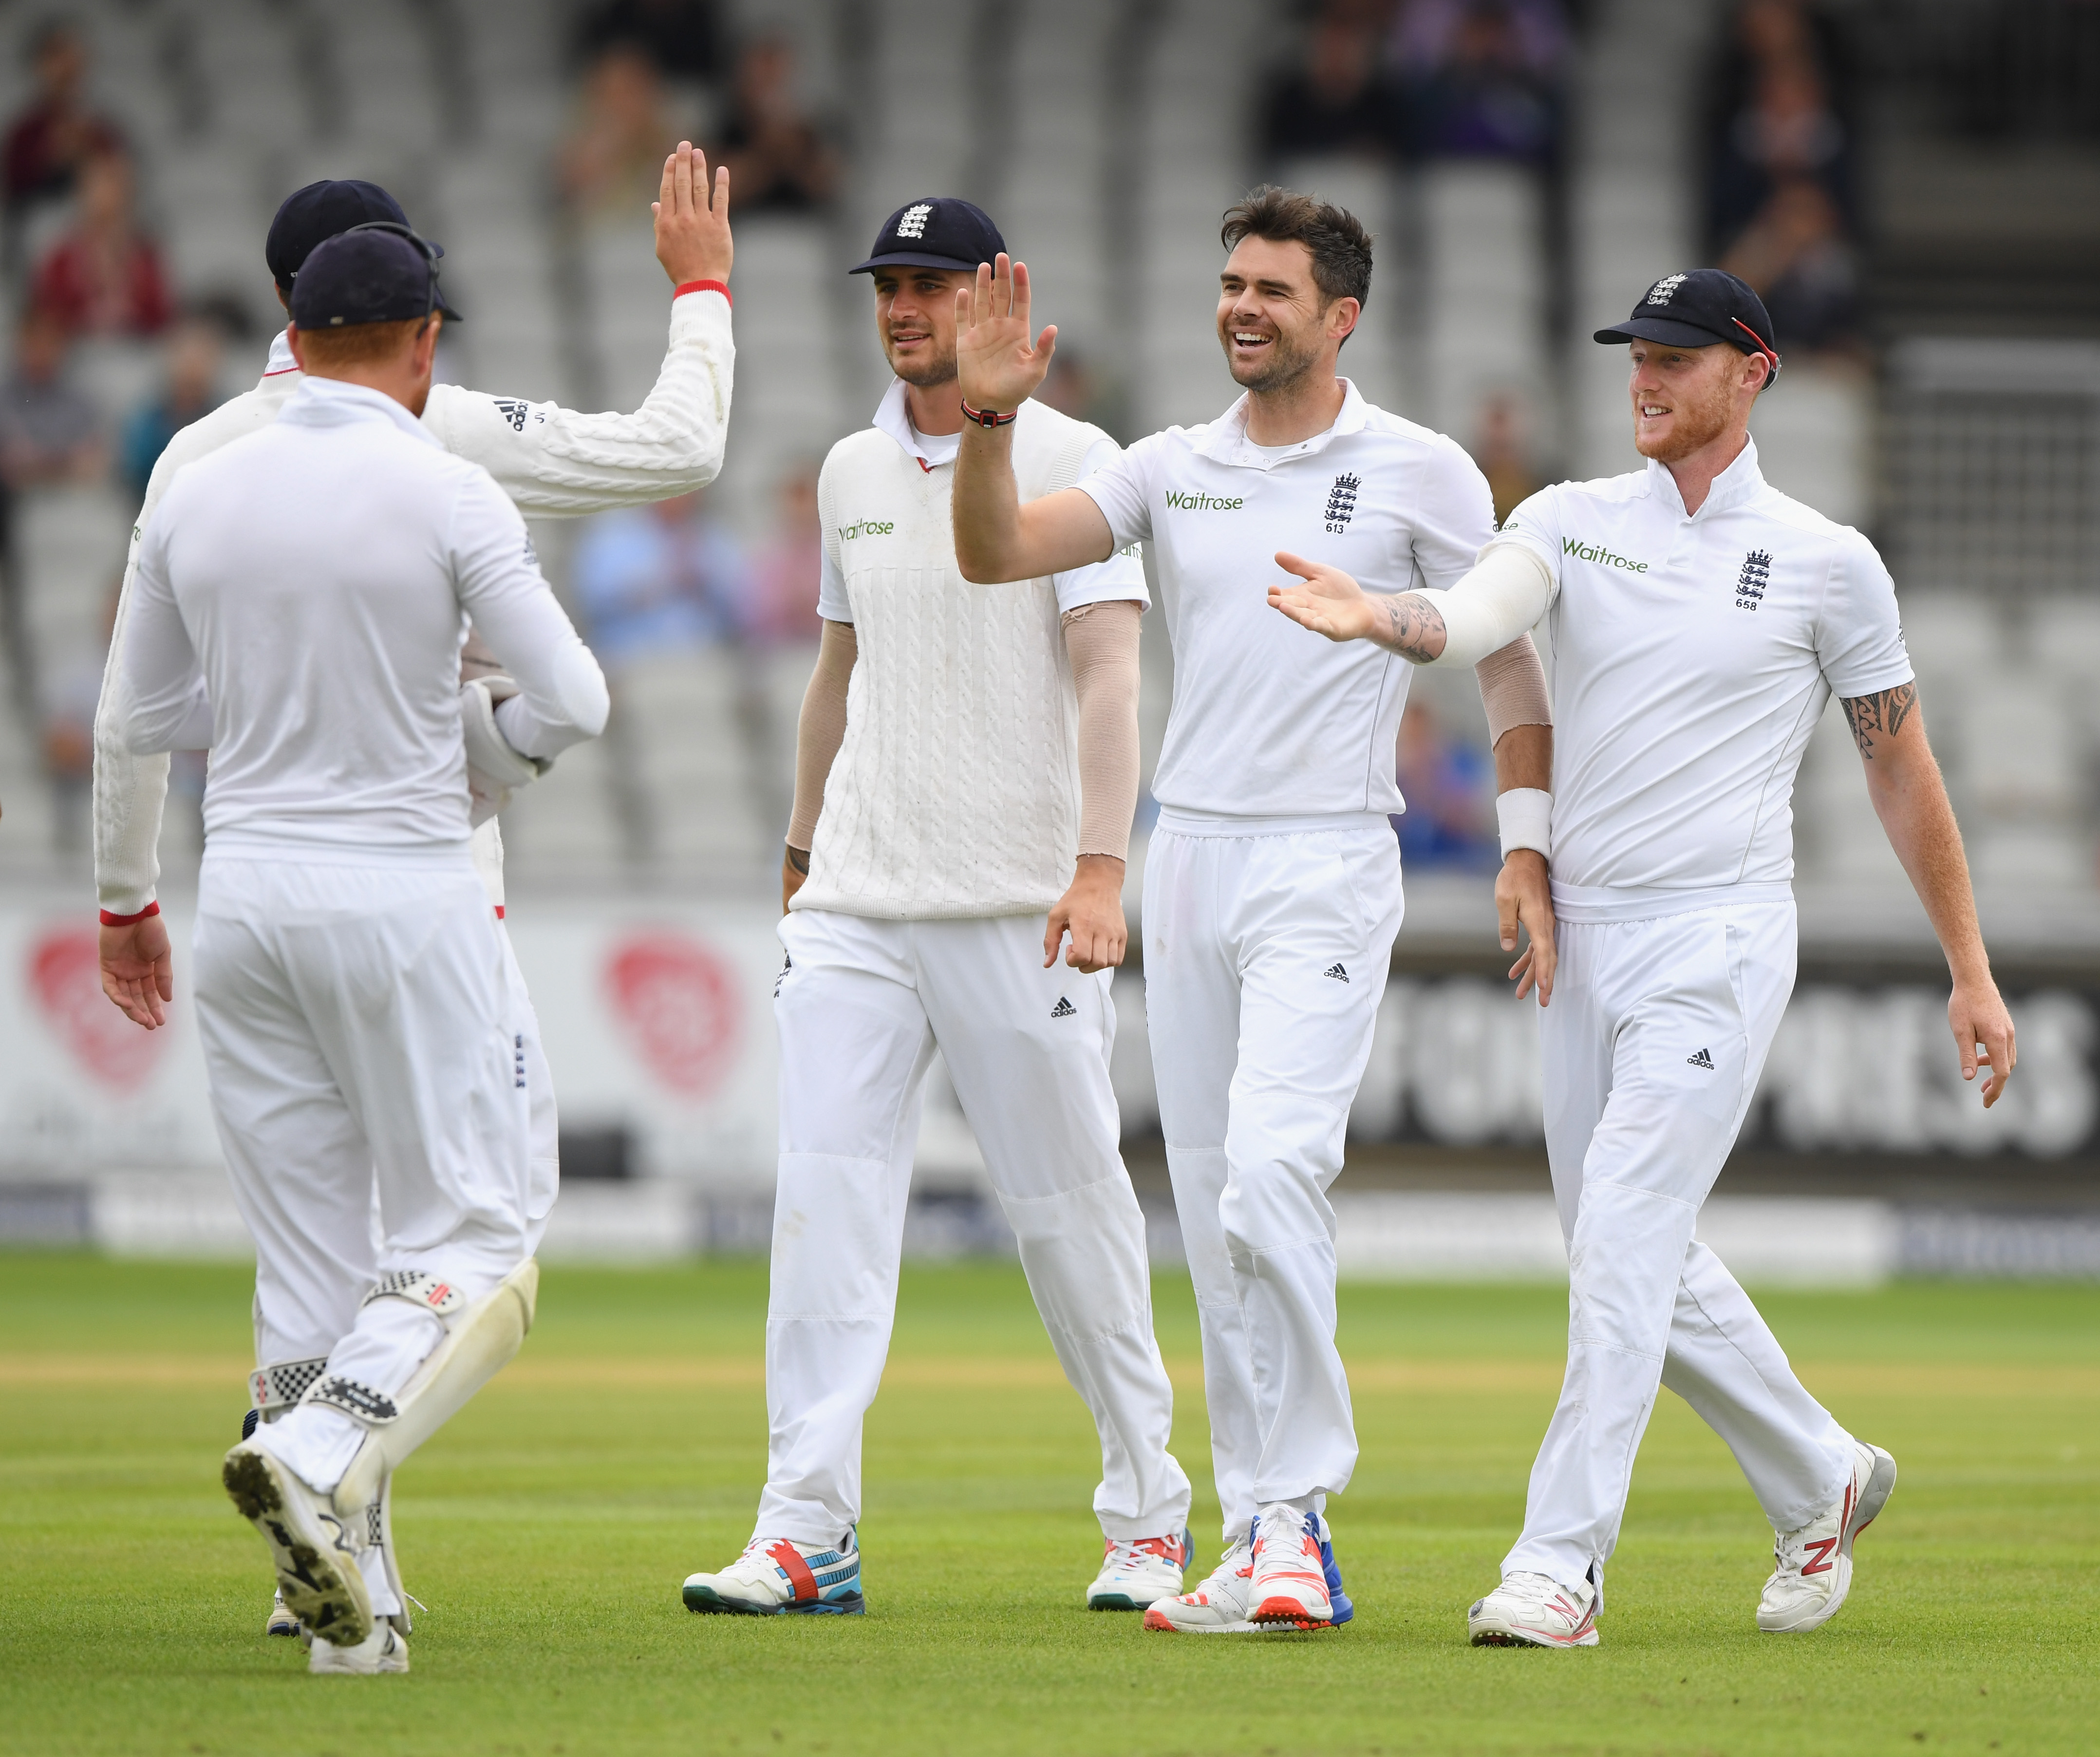 England Beat Pakistan By 330 Runs And Wrap-up Second Old